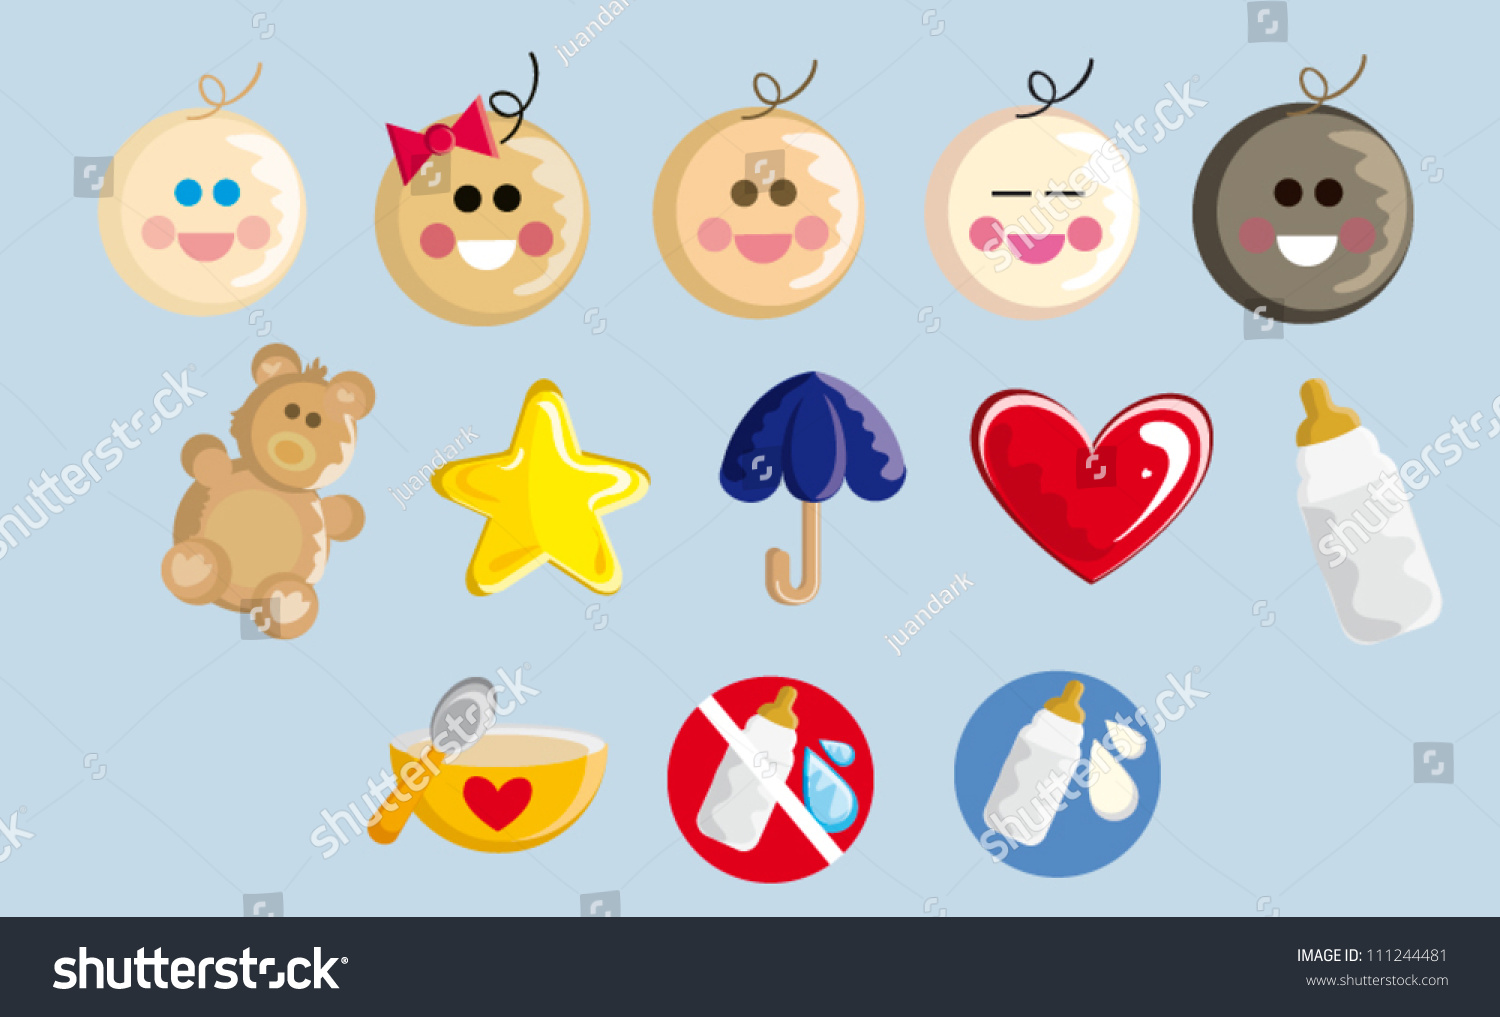 These wired Baby shower icons belong to our 2, icon set. Feel free to download this icon in PNG format for free, or unlock vectors. Unlike other icon packs that have merely hundreds of icons, this monster icon pack contains 9, icons, all in the same style and quality.